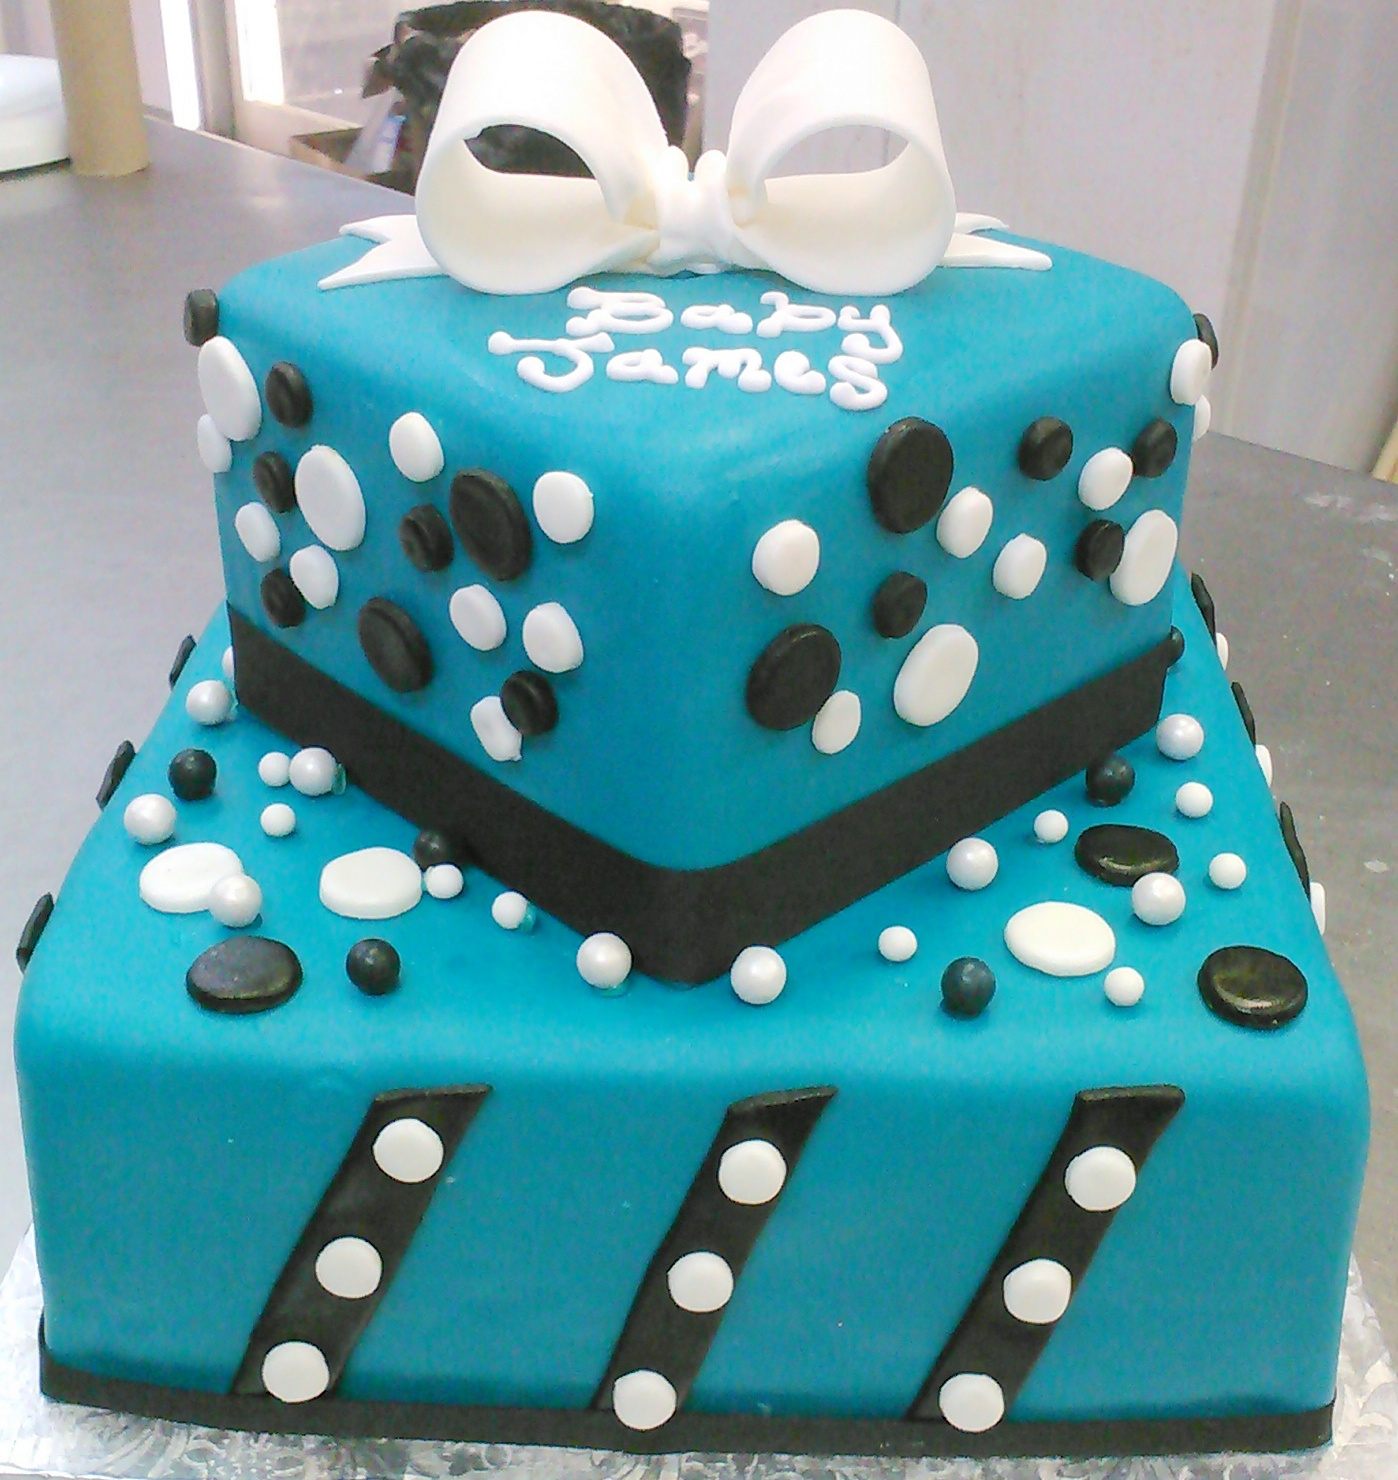 Birthday Cake Designs In Square : Art Eats Bakery custom fondant wedding and birthday cake ...